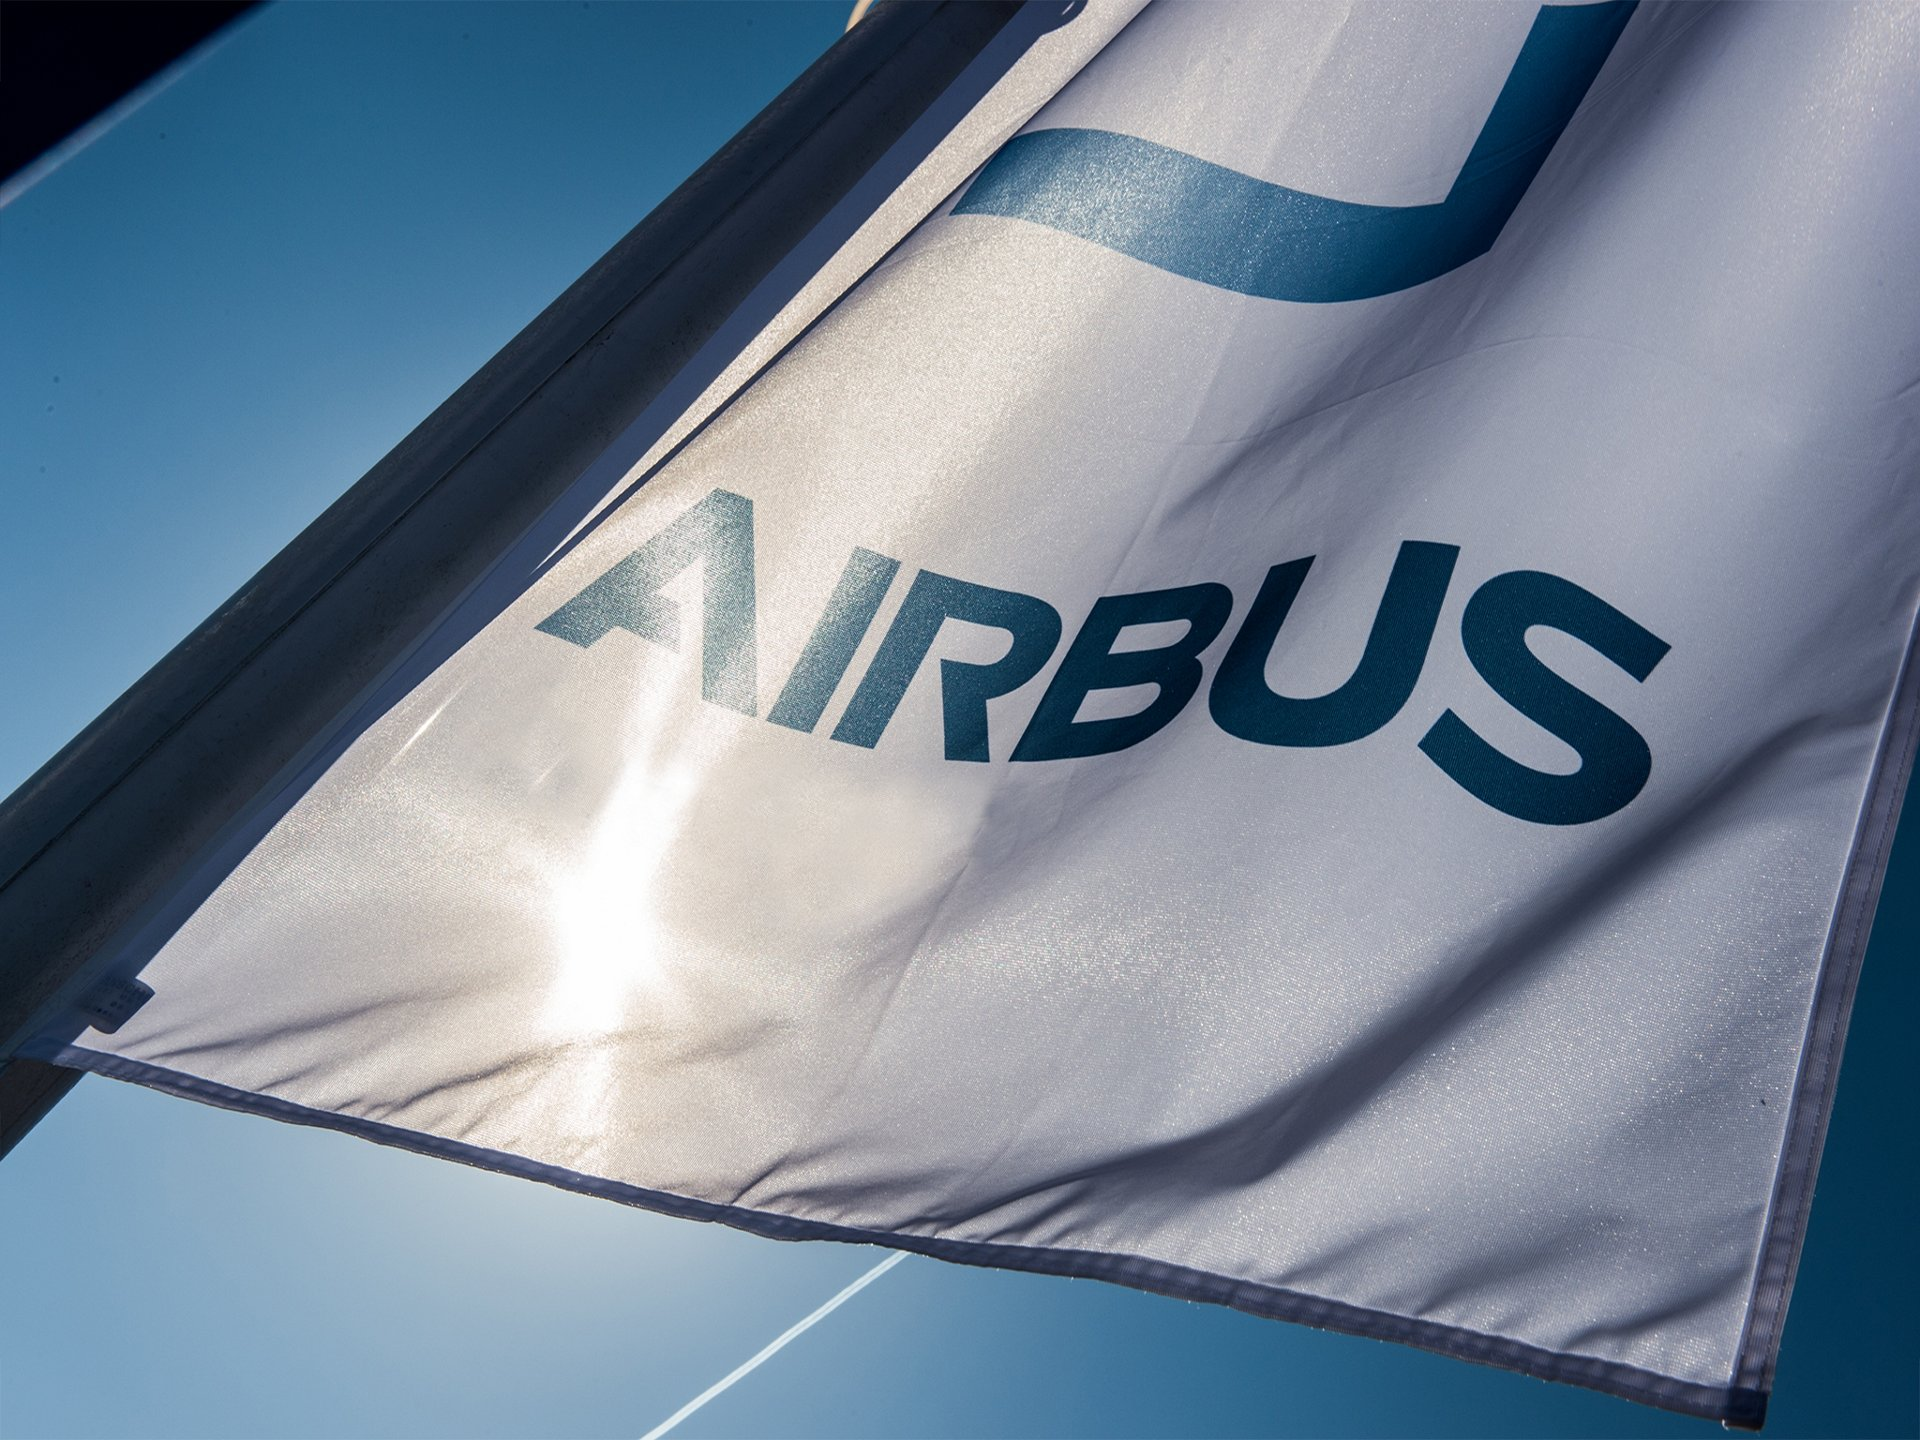 Airbus adapte ses usines au coronavirus (photo : Airbus)